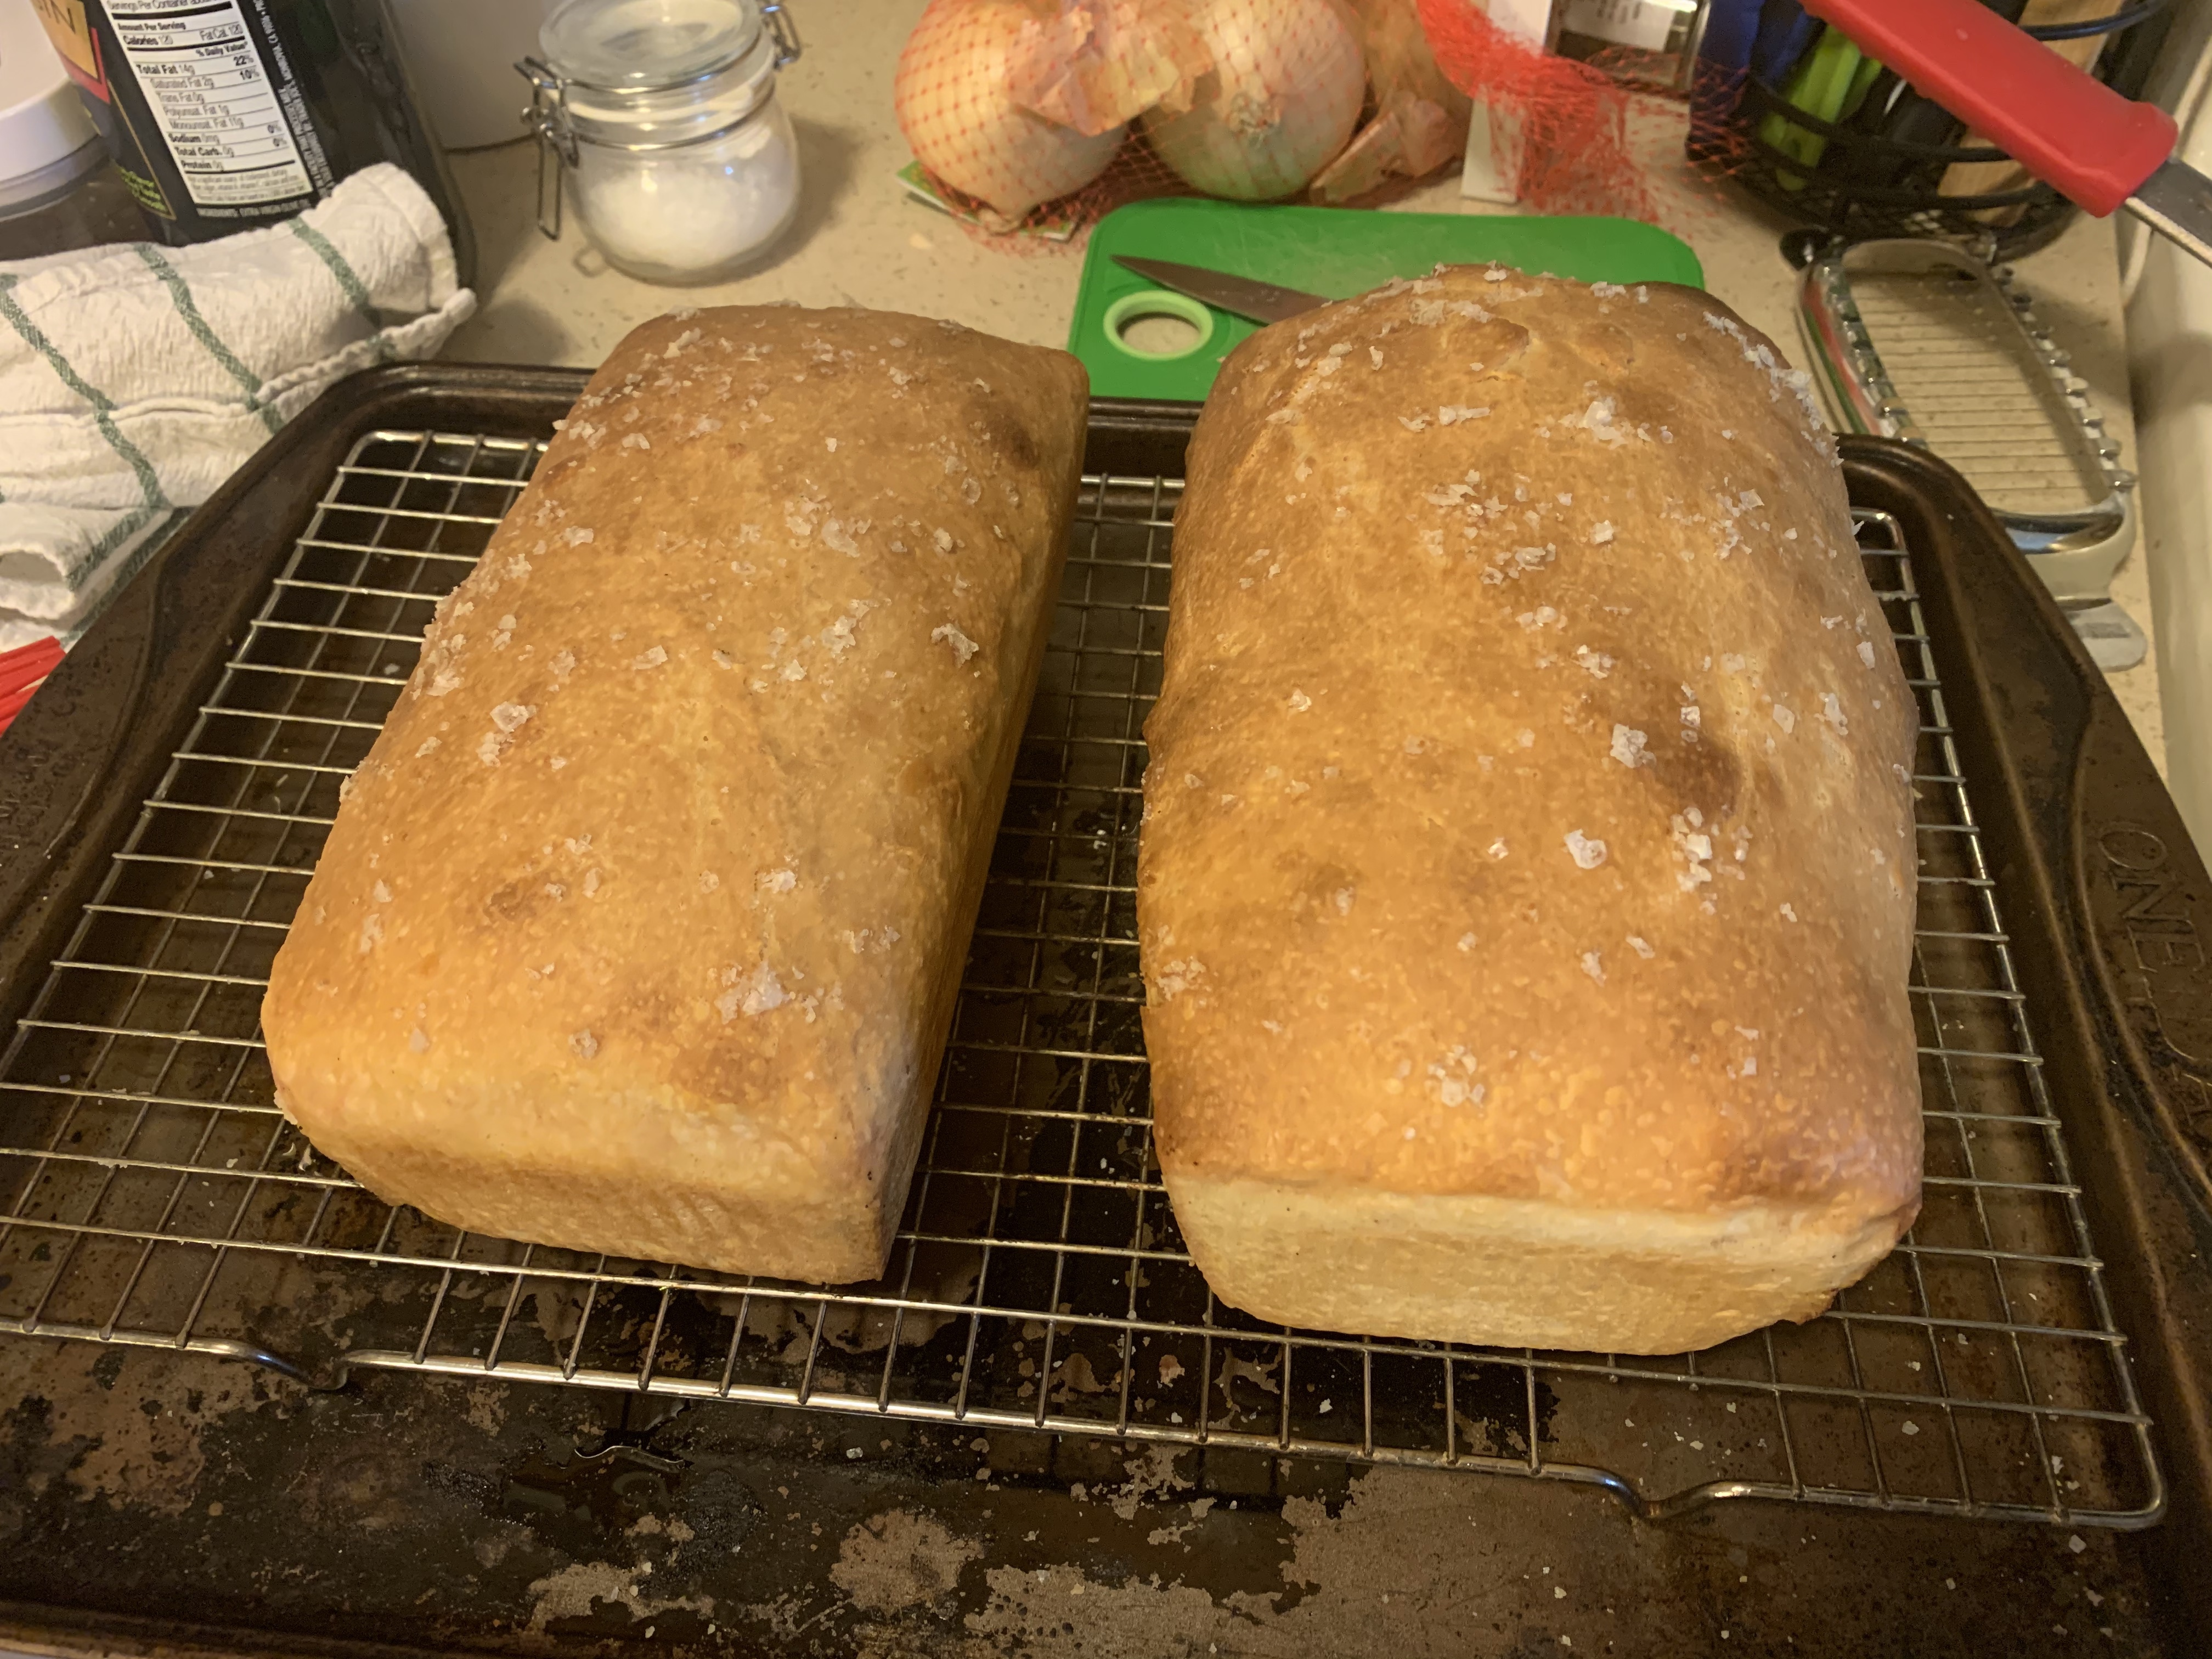 Two baked loaves, cooling on a wire rack